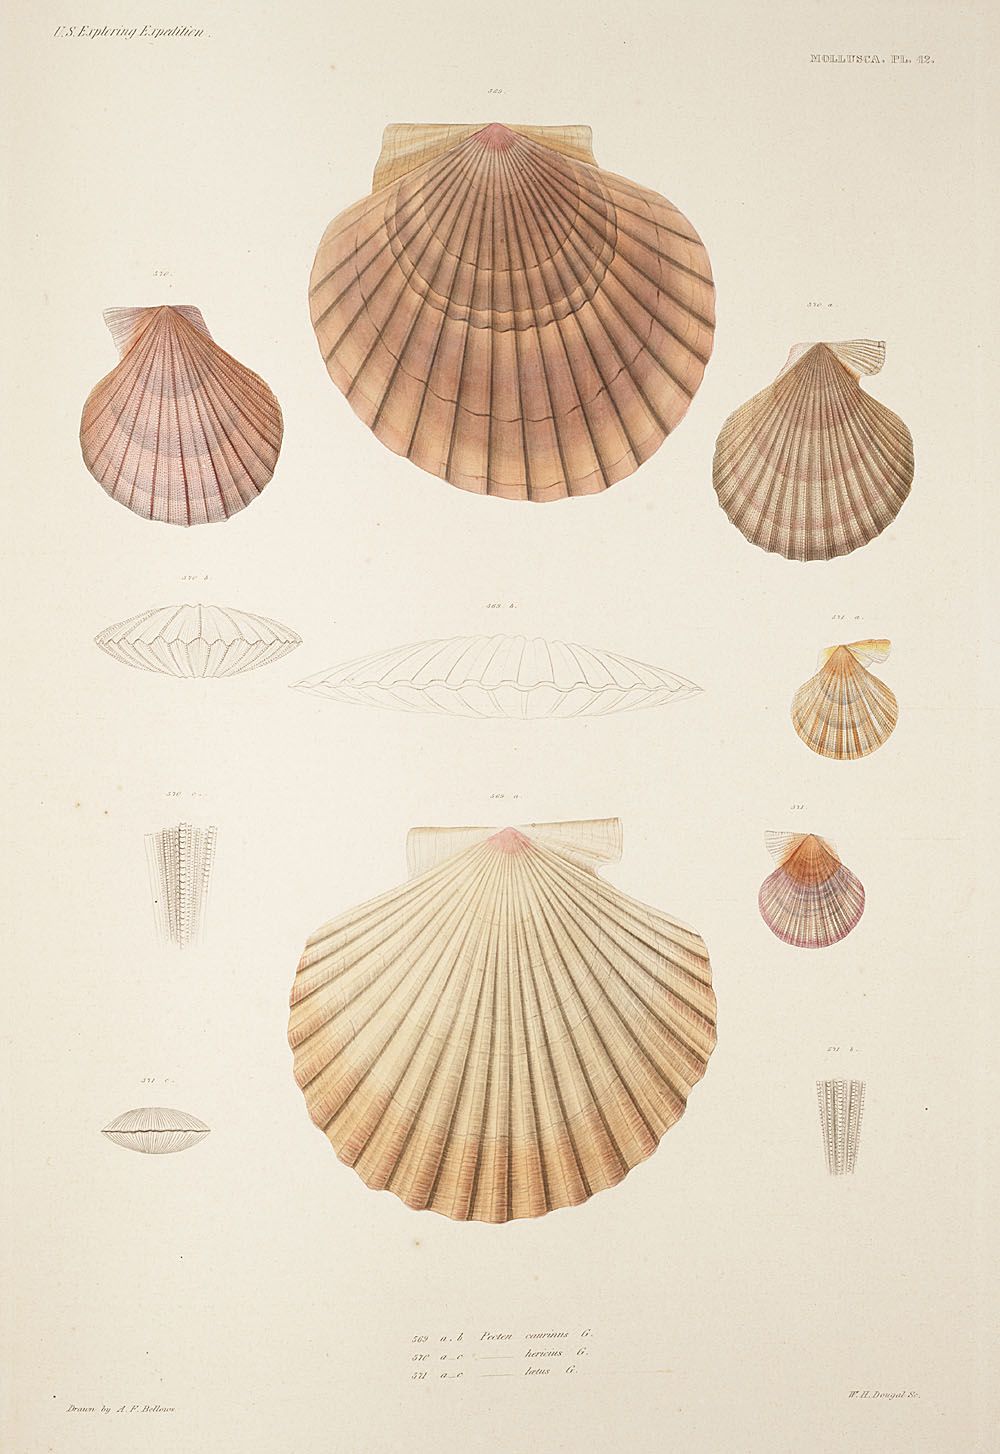 Mollusca, Pl. 42,  Image number:sil19-18-105b